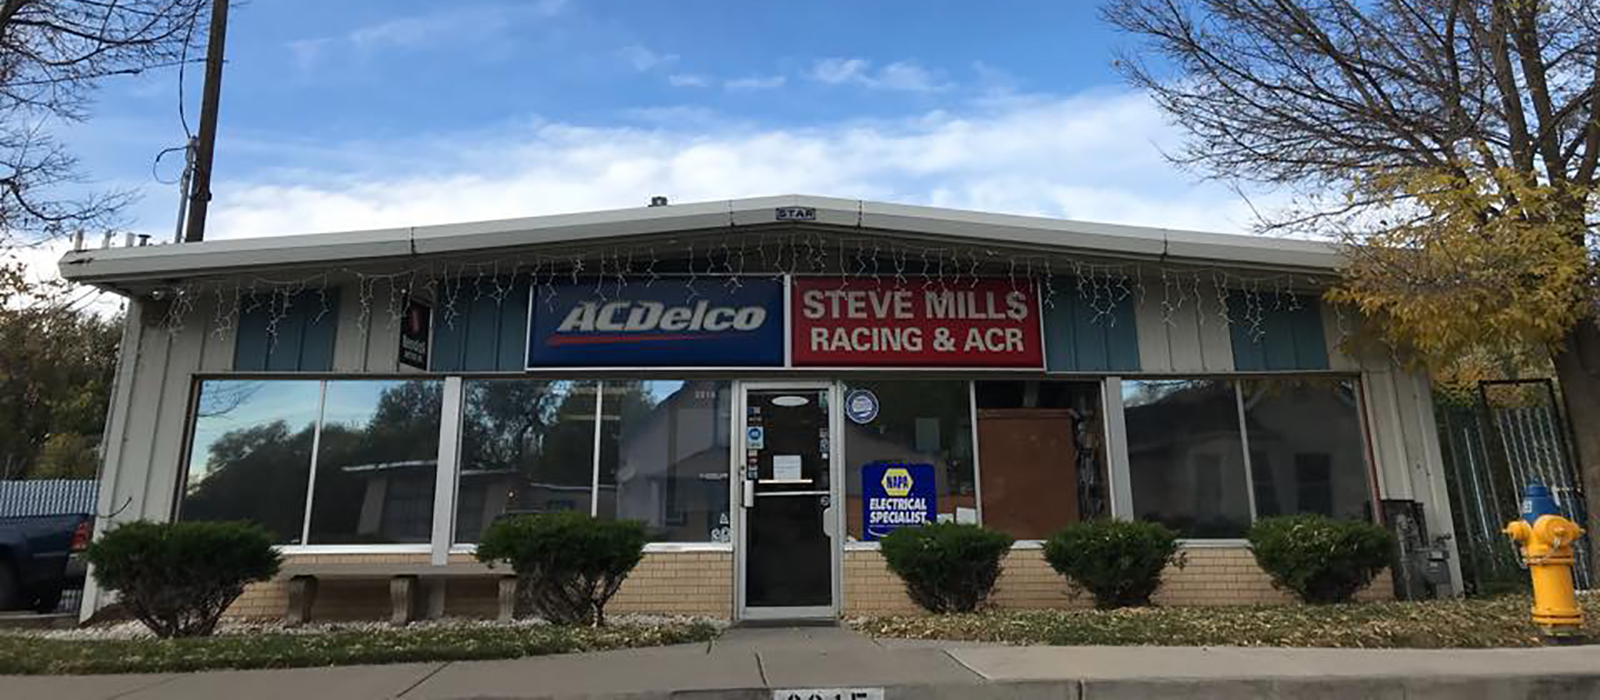 About Us - Steve Mills Racing & ACR, auto repair shop in Colorado Springs CO